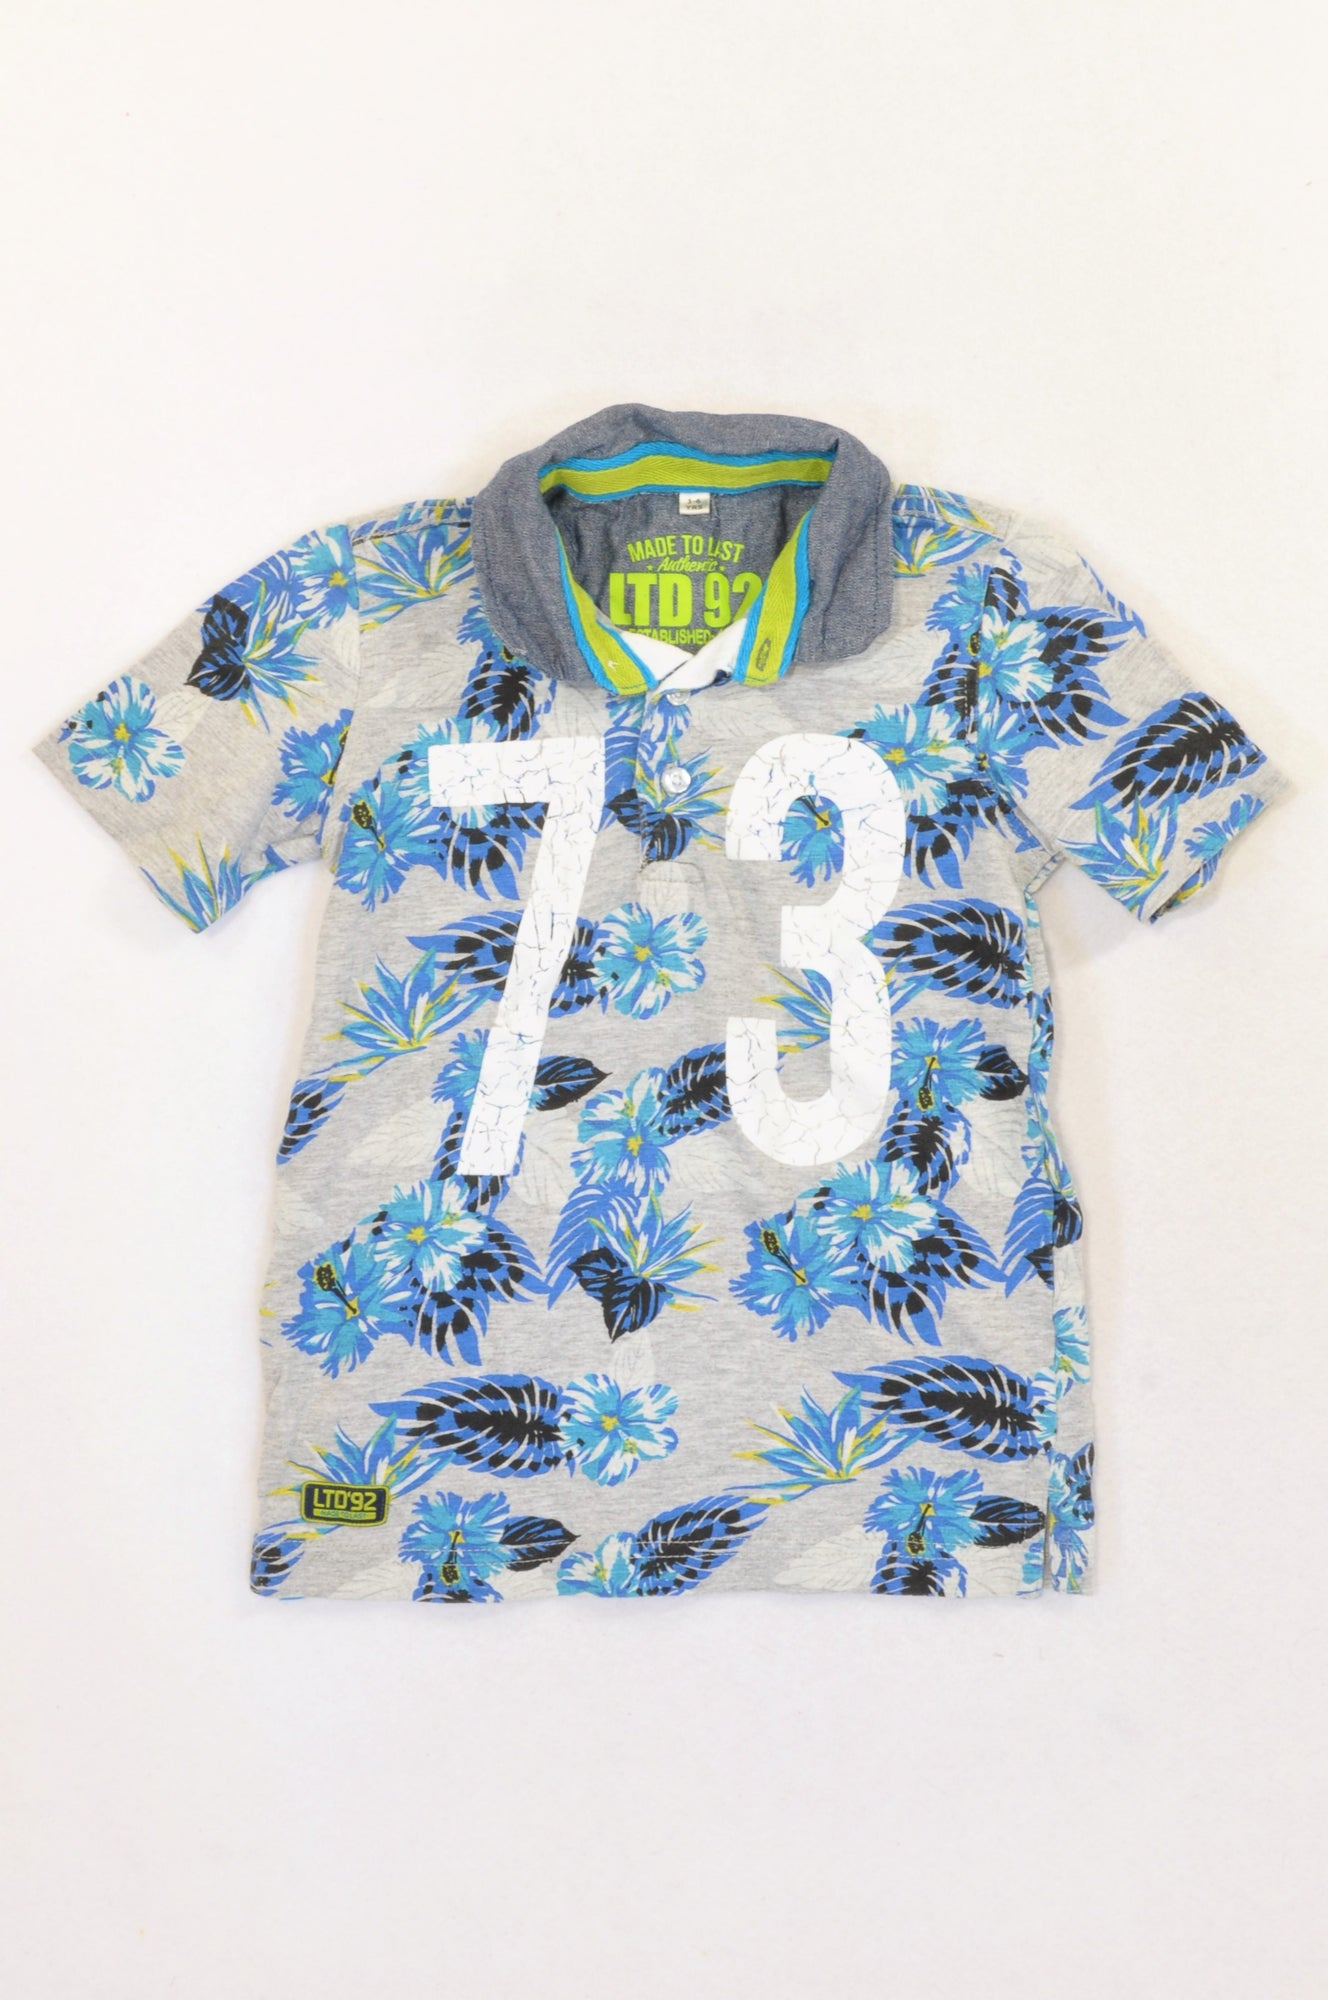 Truworths Blue Tropical Golf T-shirt Boys 5-6 years